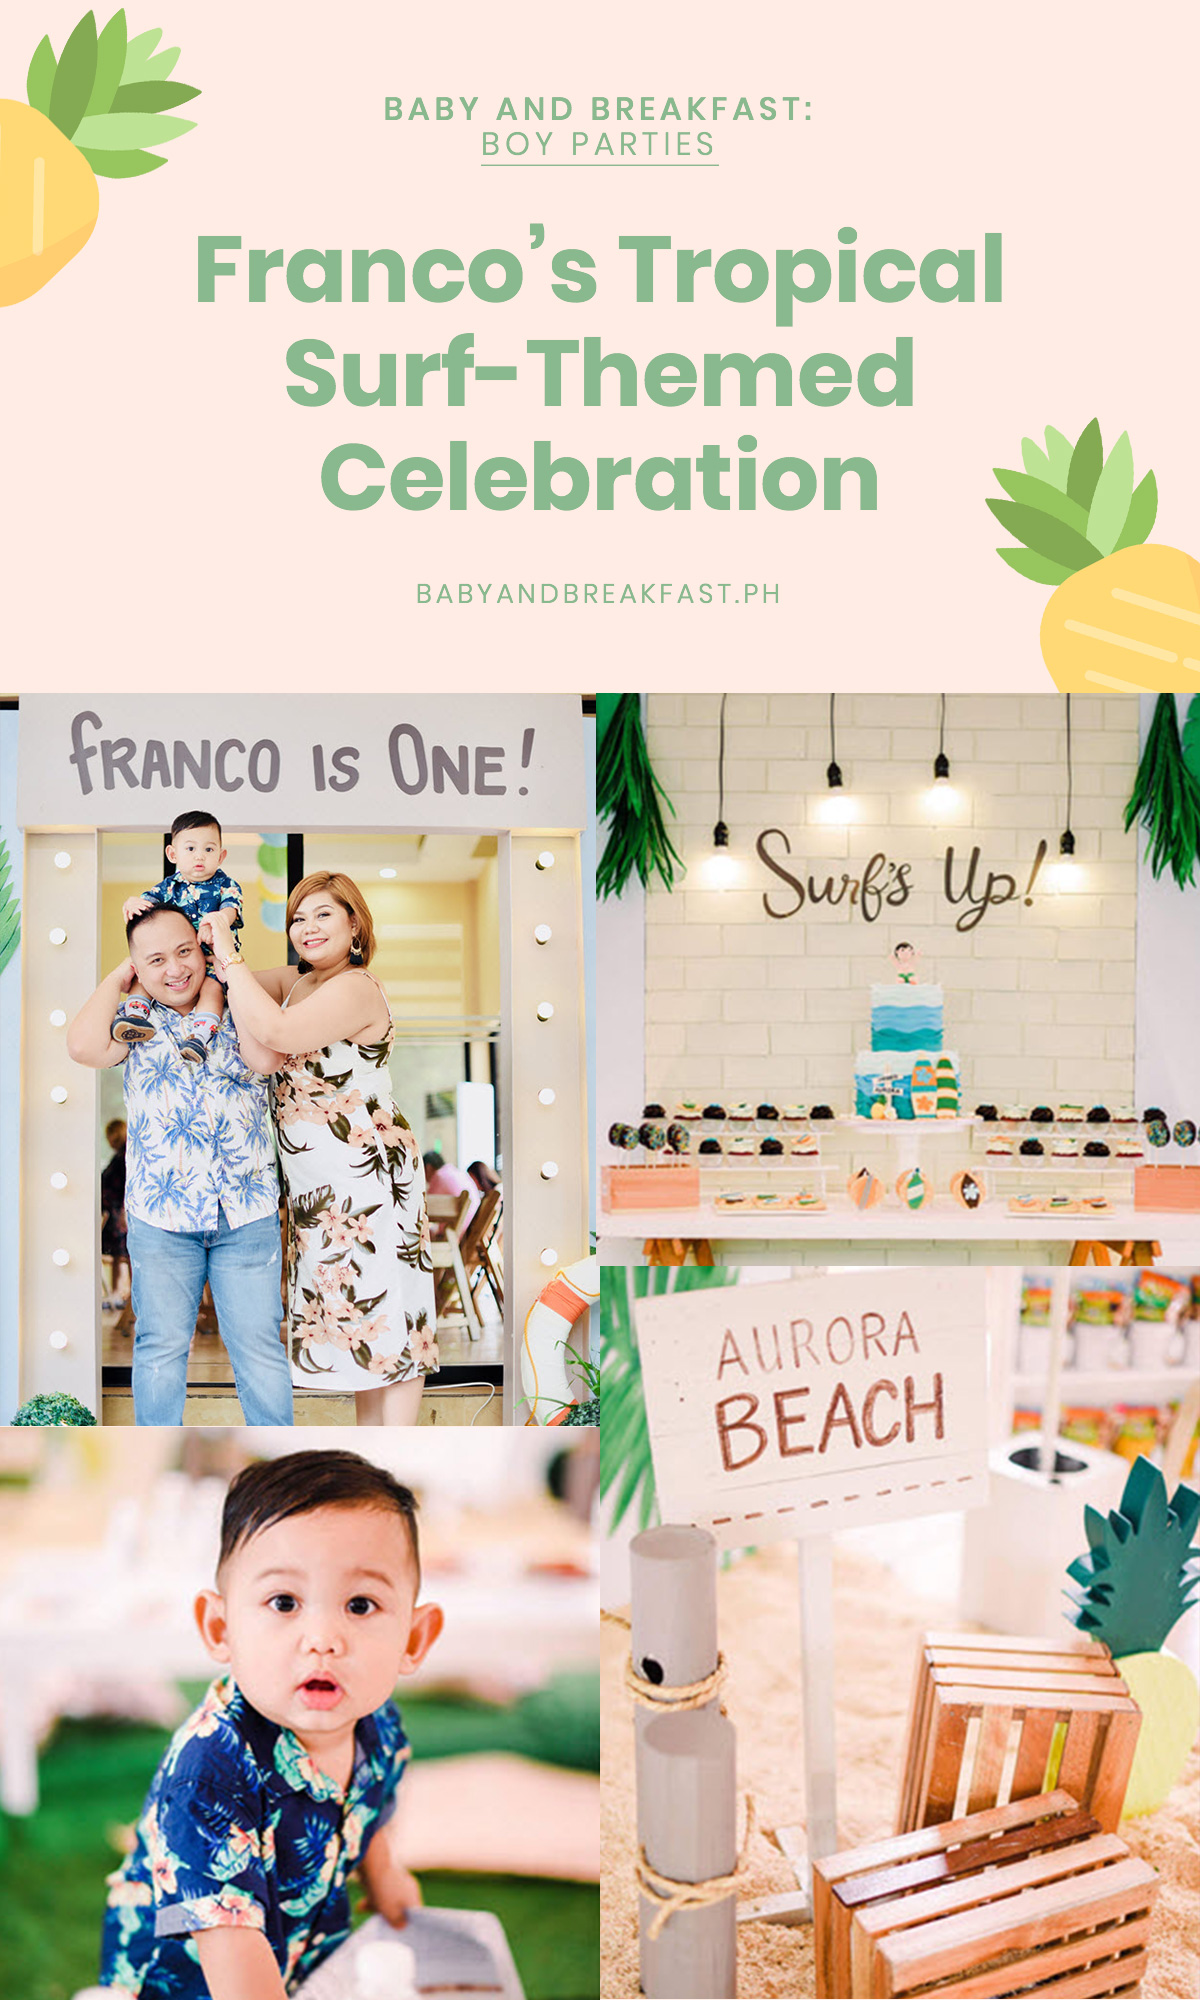 Baby and Breakfast: Boy Parties Franco's Tropical Surf-Themed Celebration